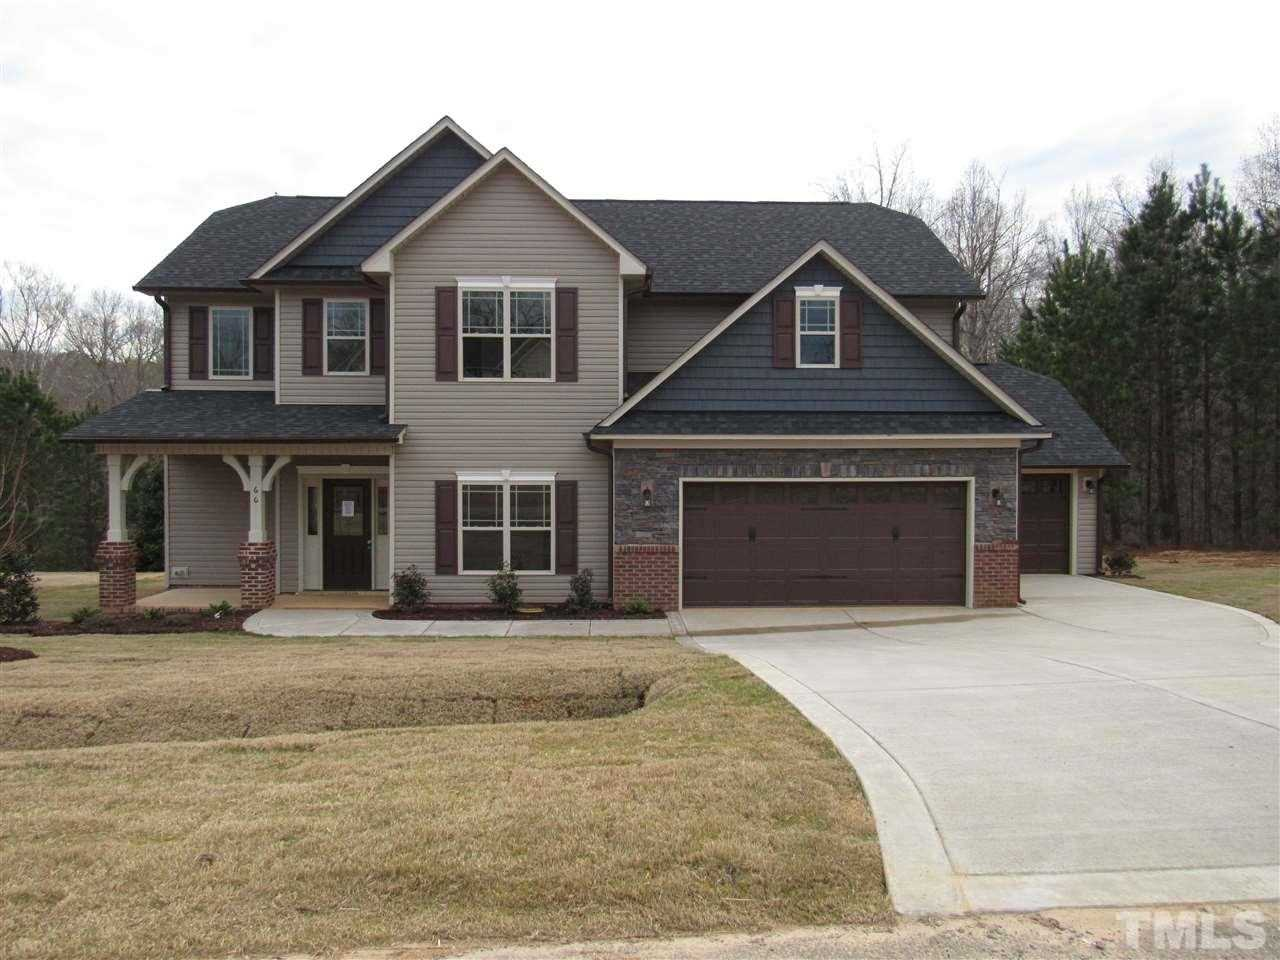 66 Northcliff Court Clayton, NC 27527 | MLS 2226199 Photo 1